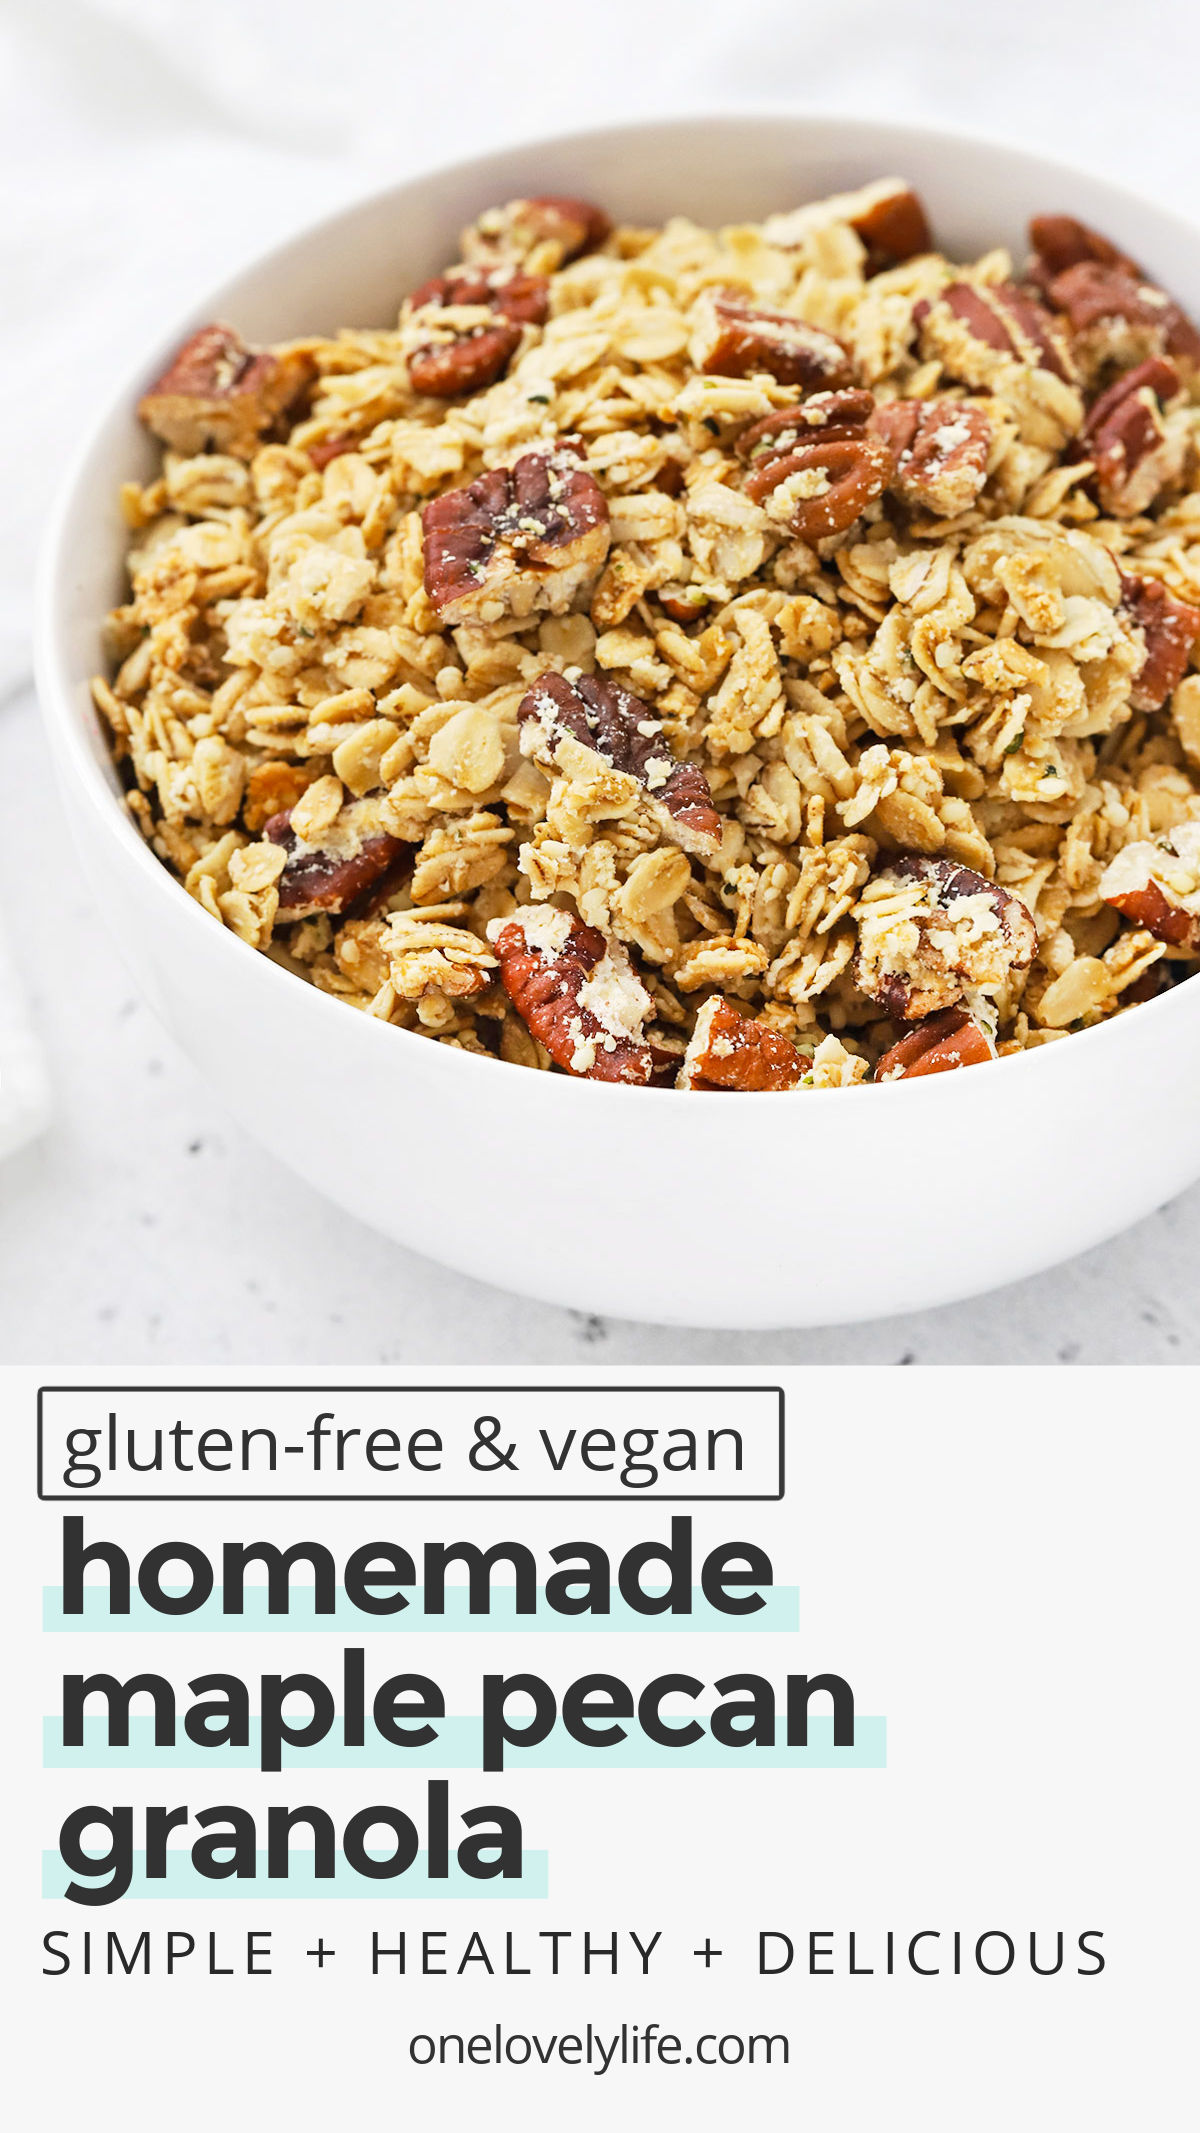 Maple Pecan Granola - This sweet and crunchy gluten-free granola is delicious with yogurt, sprinkled over a smoothie bowl, and munched on by the handful. Gluten free, vegan, and naturally sweetened! // Gluten-Free Granola Recipe // Pecan Granola // Healthy Breakfast // Vegan Breakfast // Homemade Granola // Healthy Granola #glutenfree #granola #vegan #maple #pecan #healthybreakfast